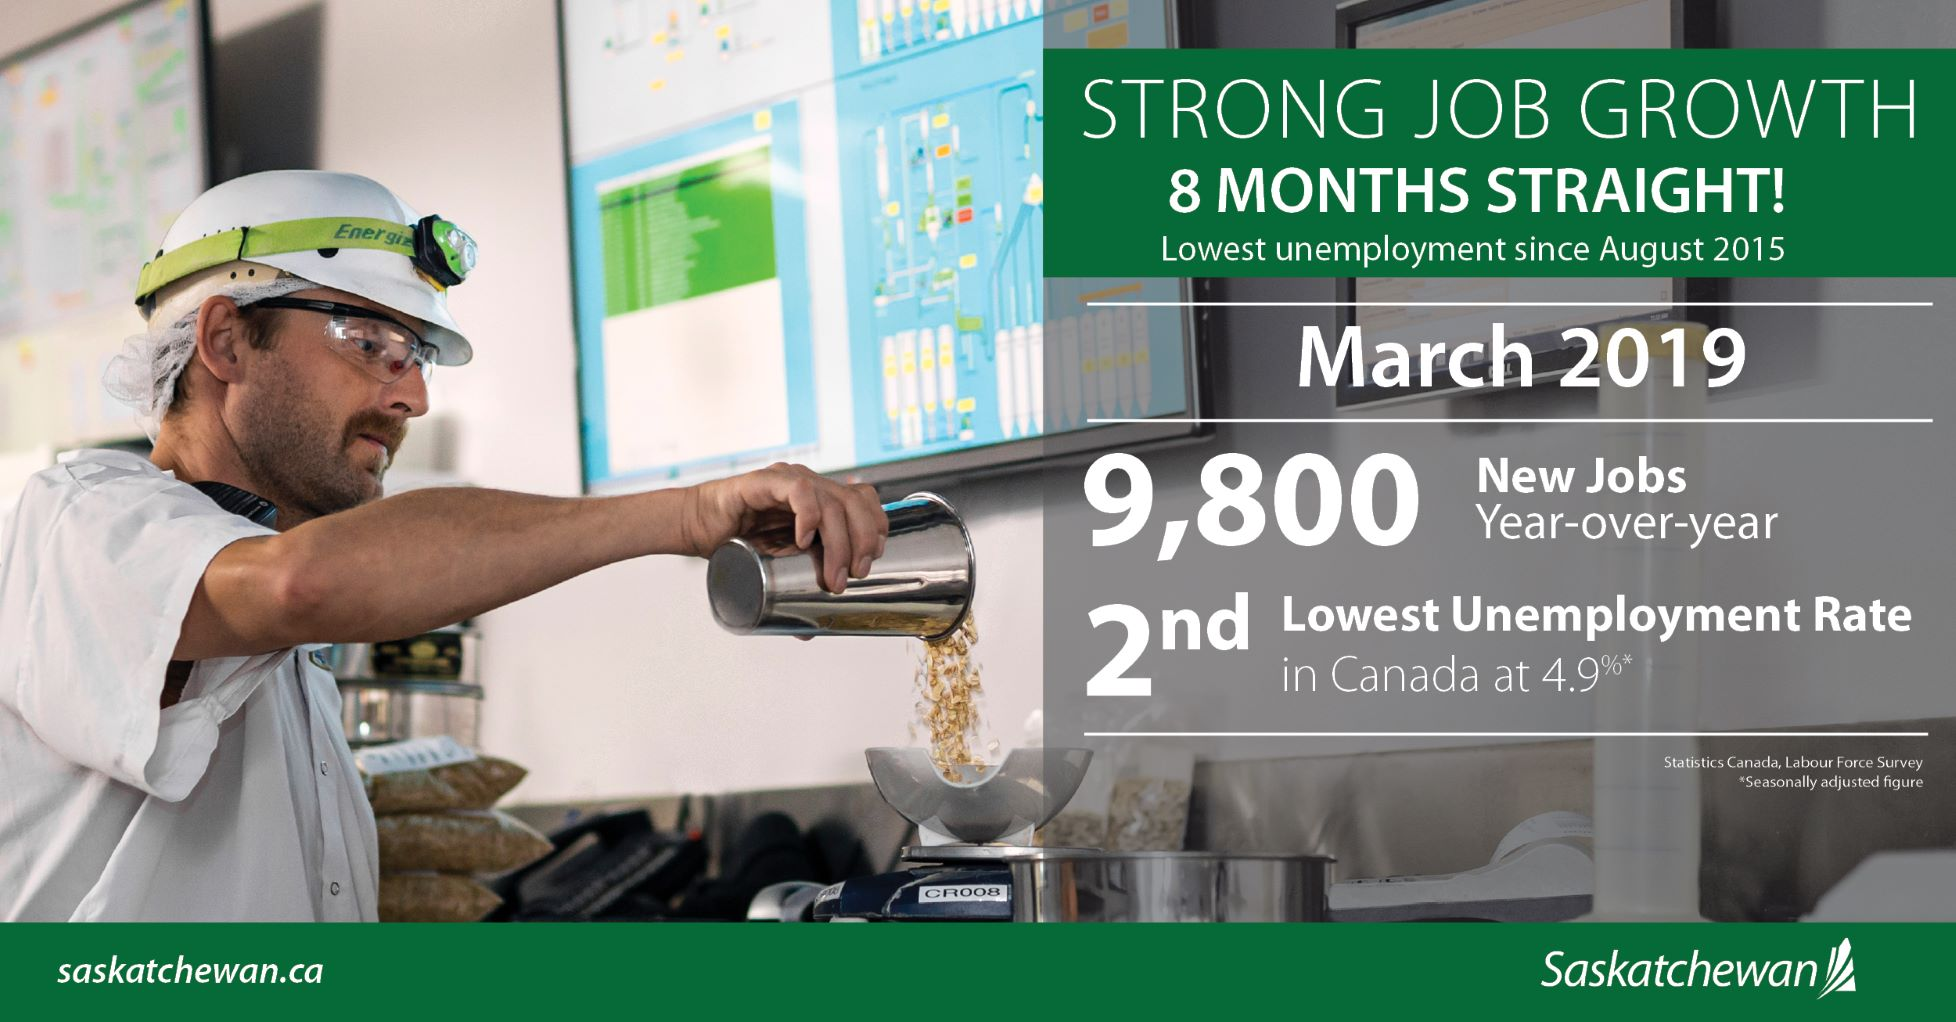 Lowest Unemployment Rate Since 2015 And 9,800 New Jobs Economic Development SouthWest Saskatchewan  Unemployment Rate Saskatchewan Jobs Government of Saskatchewan